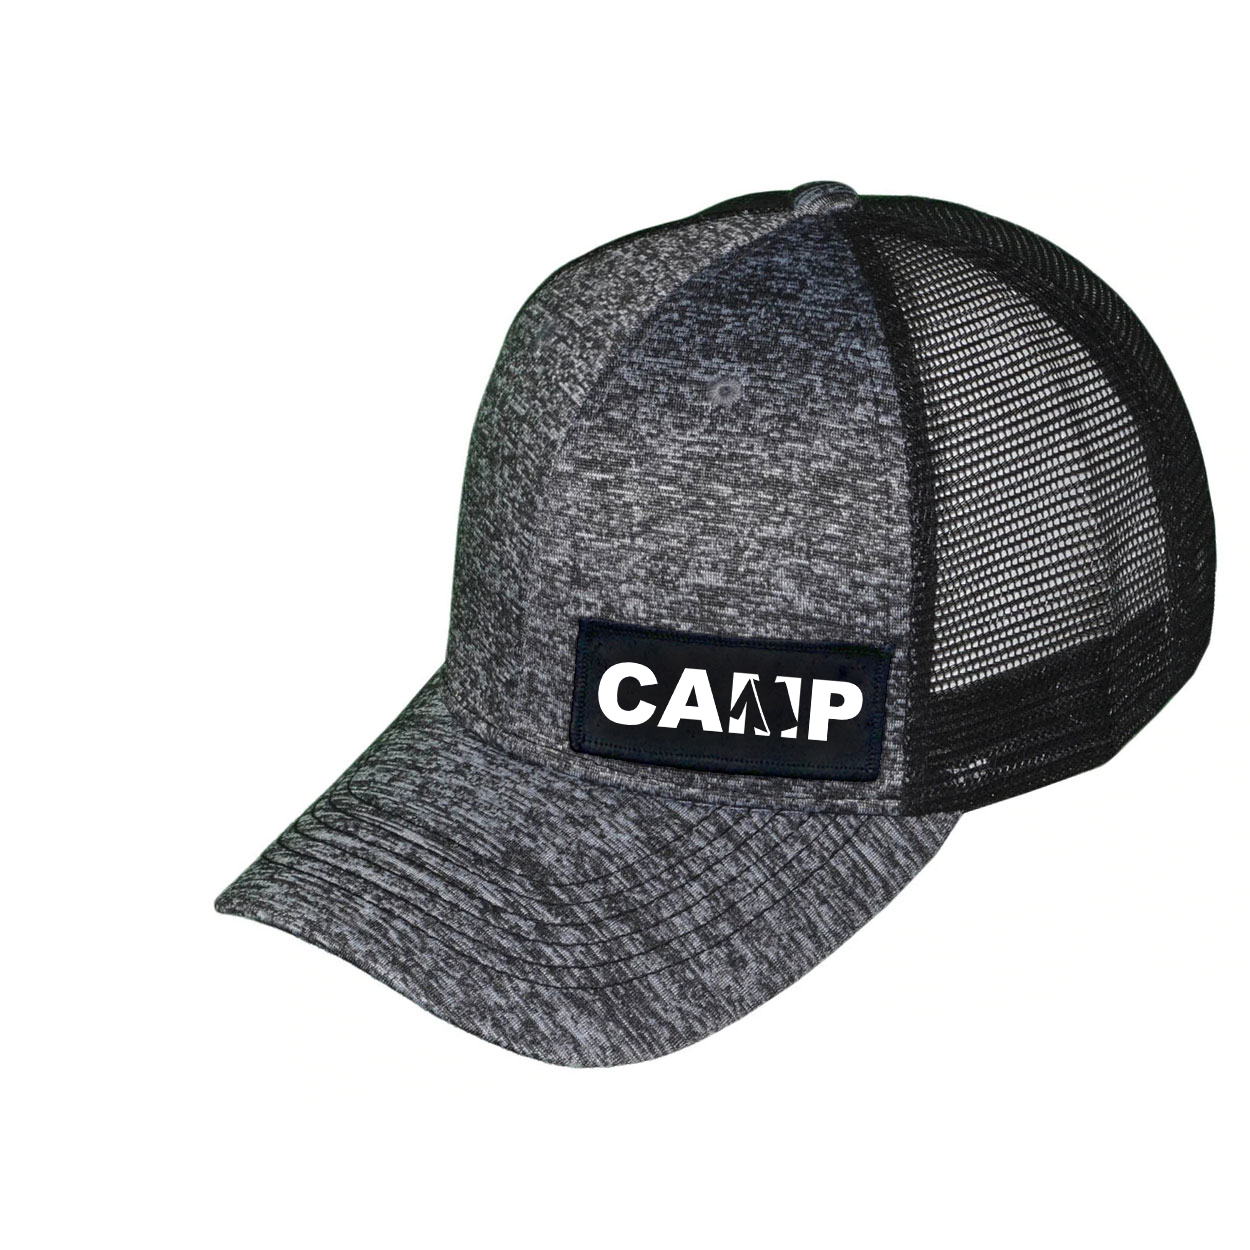 Camp Tent Logo Night Out Woven Patch Melange Snapback Trucker Hat Gray/Black (White Logo)